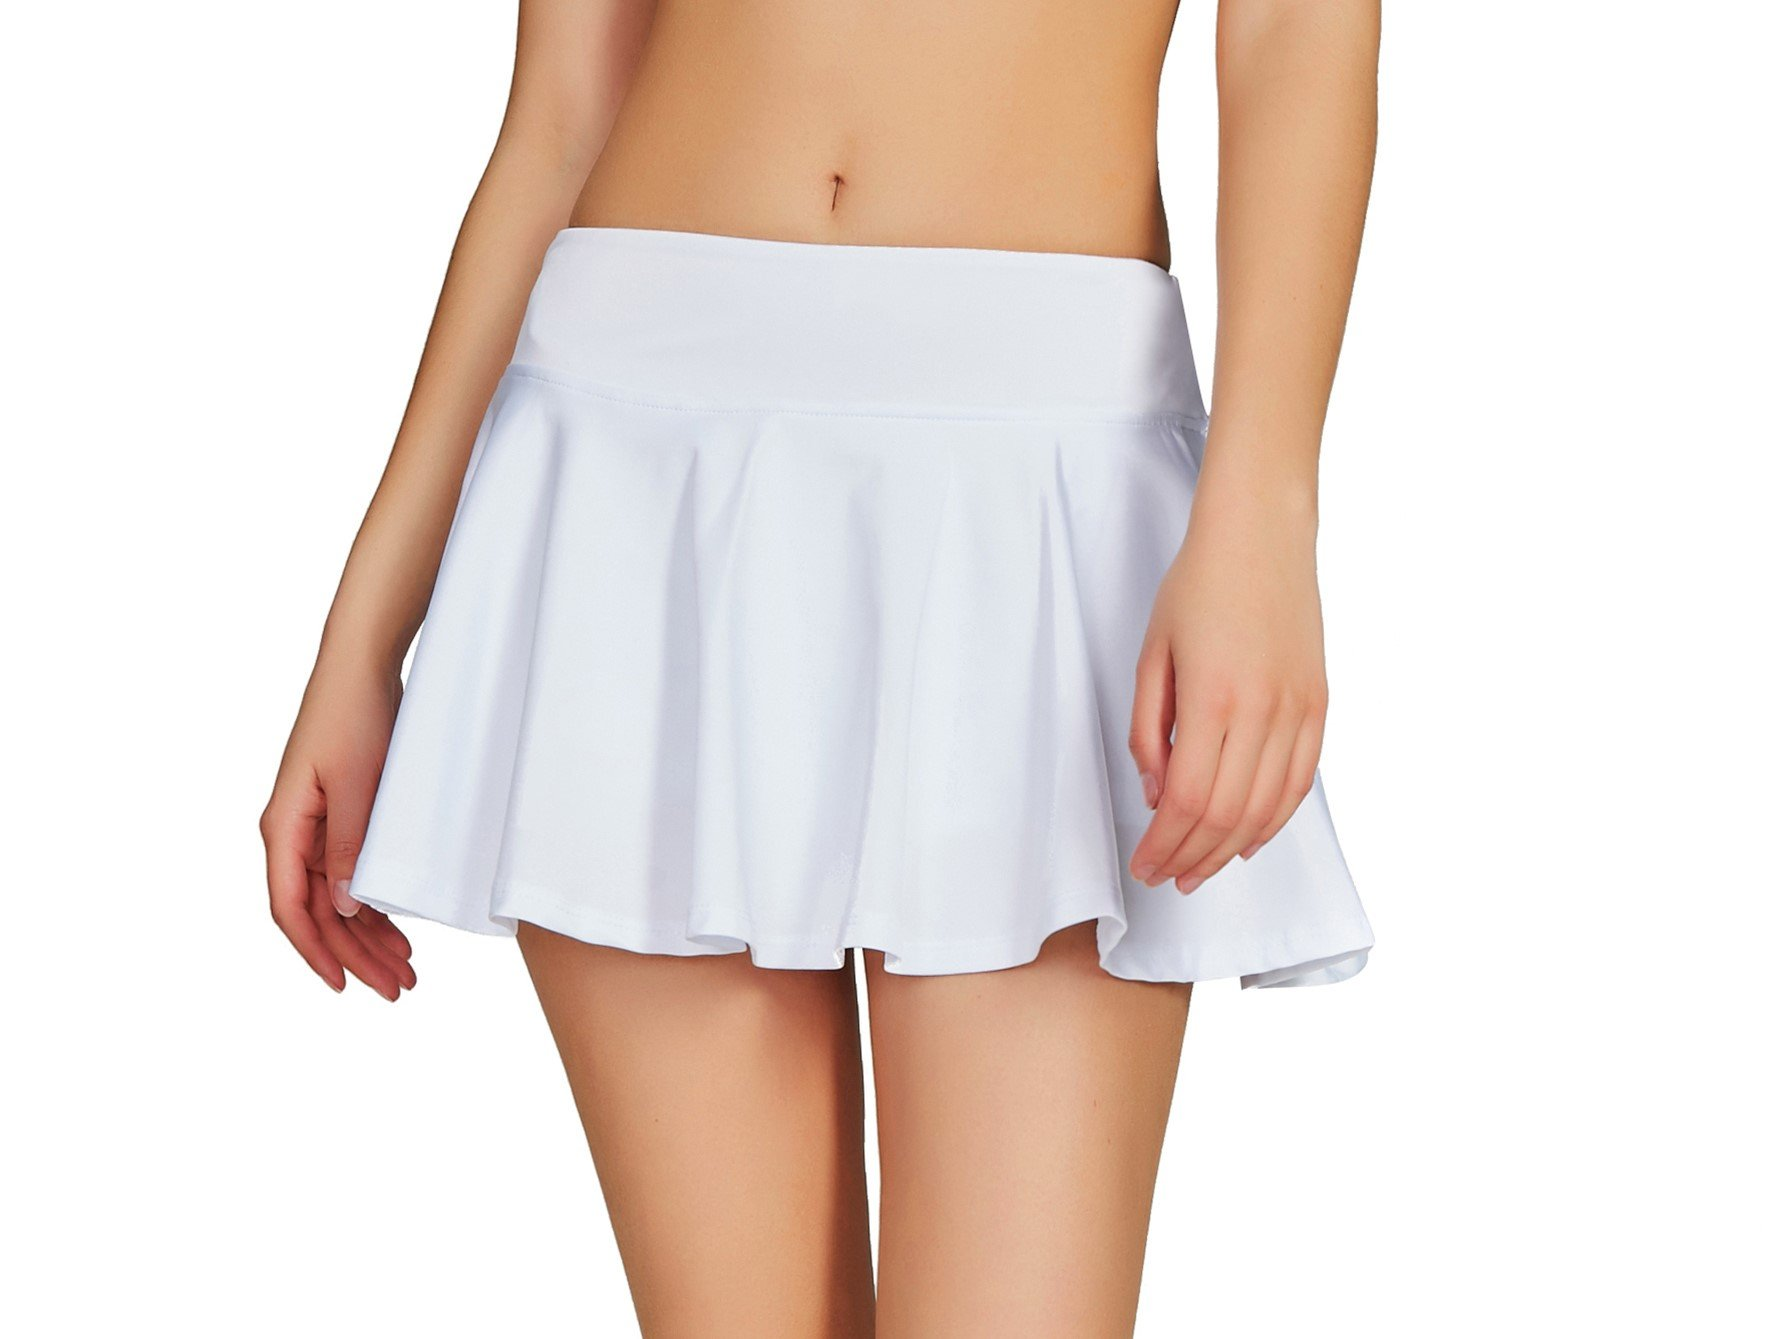 Cityoung Women Running Golf Skort Plus Size Pocket Girl Athletic Tennis Skirt Shorts Underneath l White